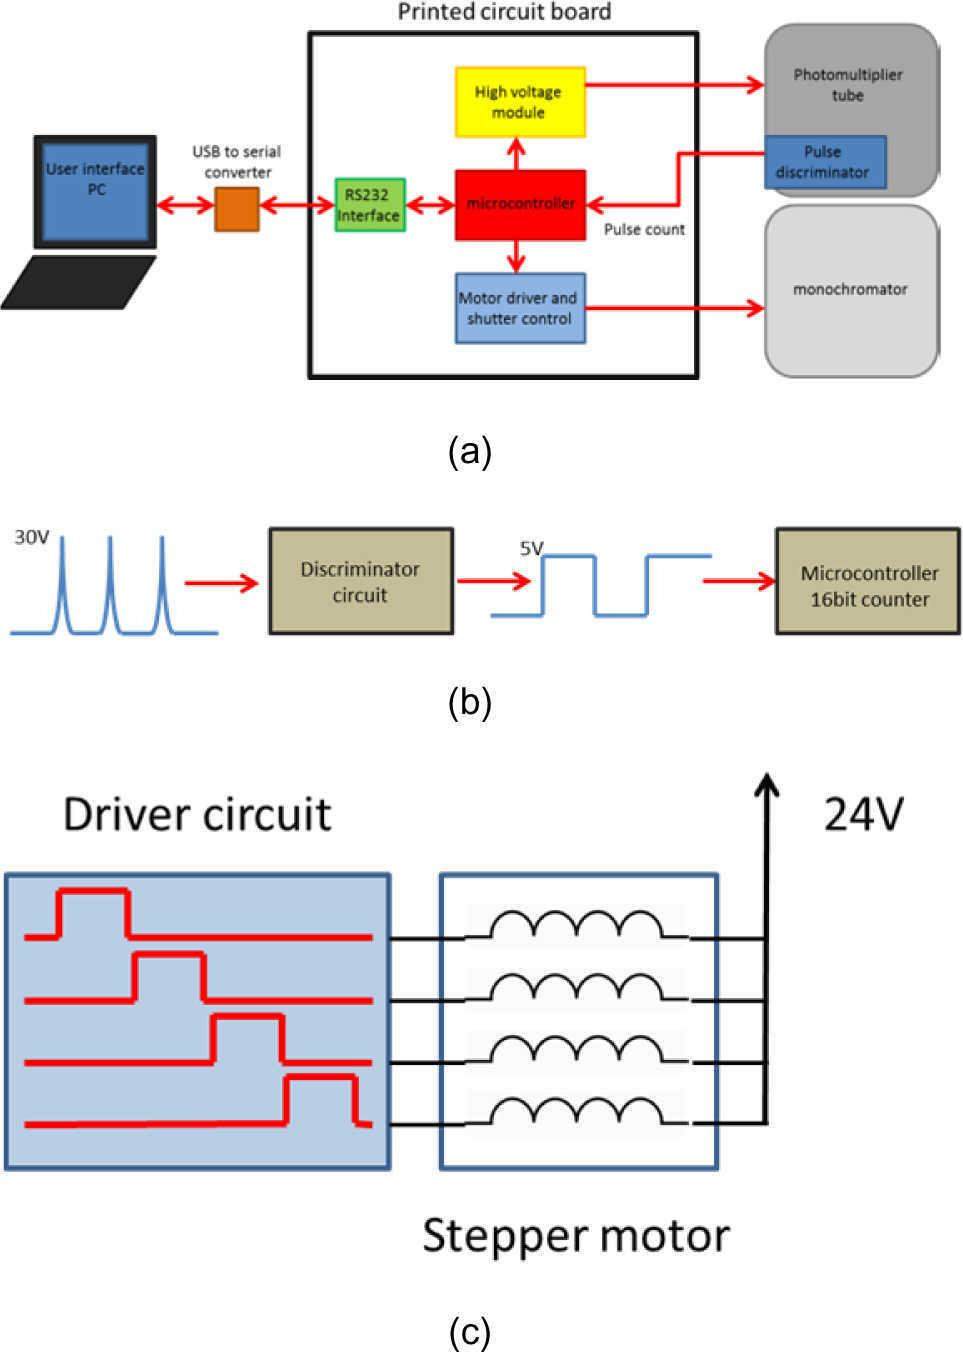 Control System Development For A Raman Spectrometer Using Block Diagram Of The Human Computer Interface Rehabilitated Spectroscopy Equipment Motor Driver